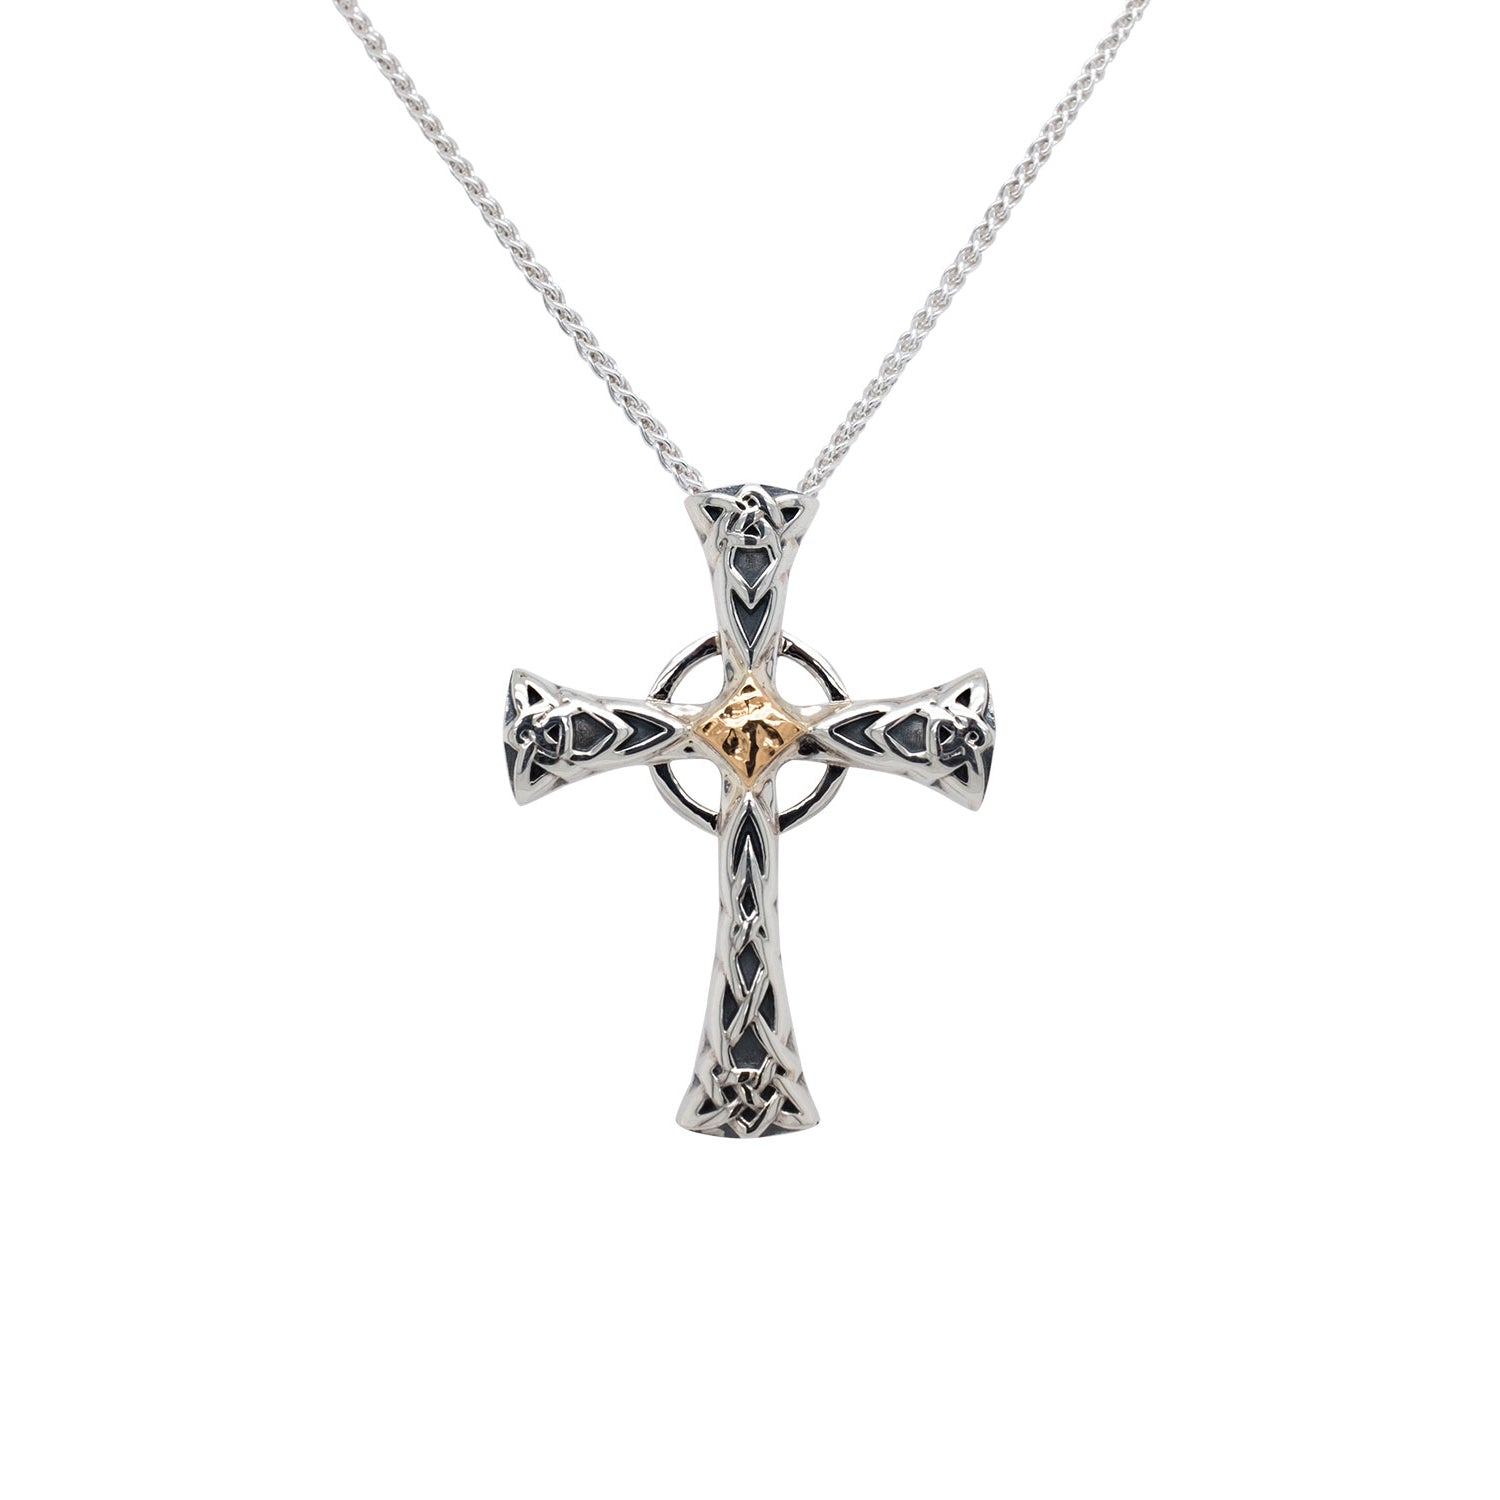 Pendant 10k Celtic Cross Small Pendant from welch and company jewelers near syracuse ny